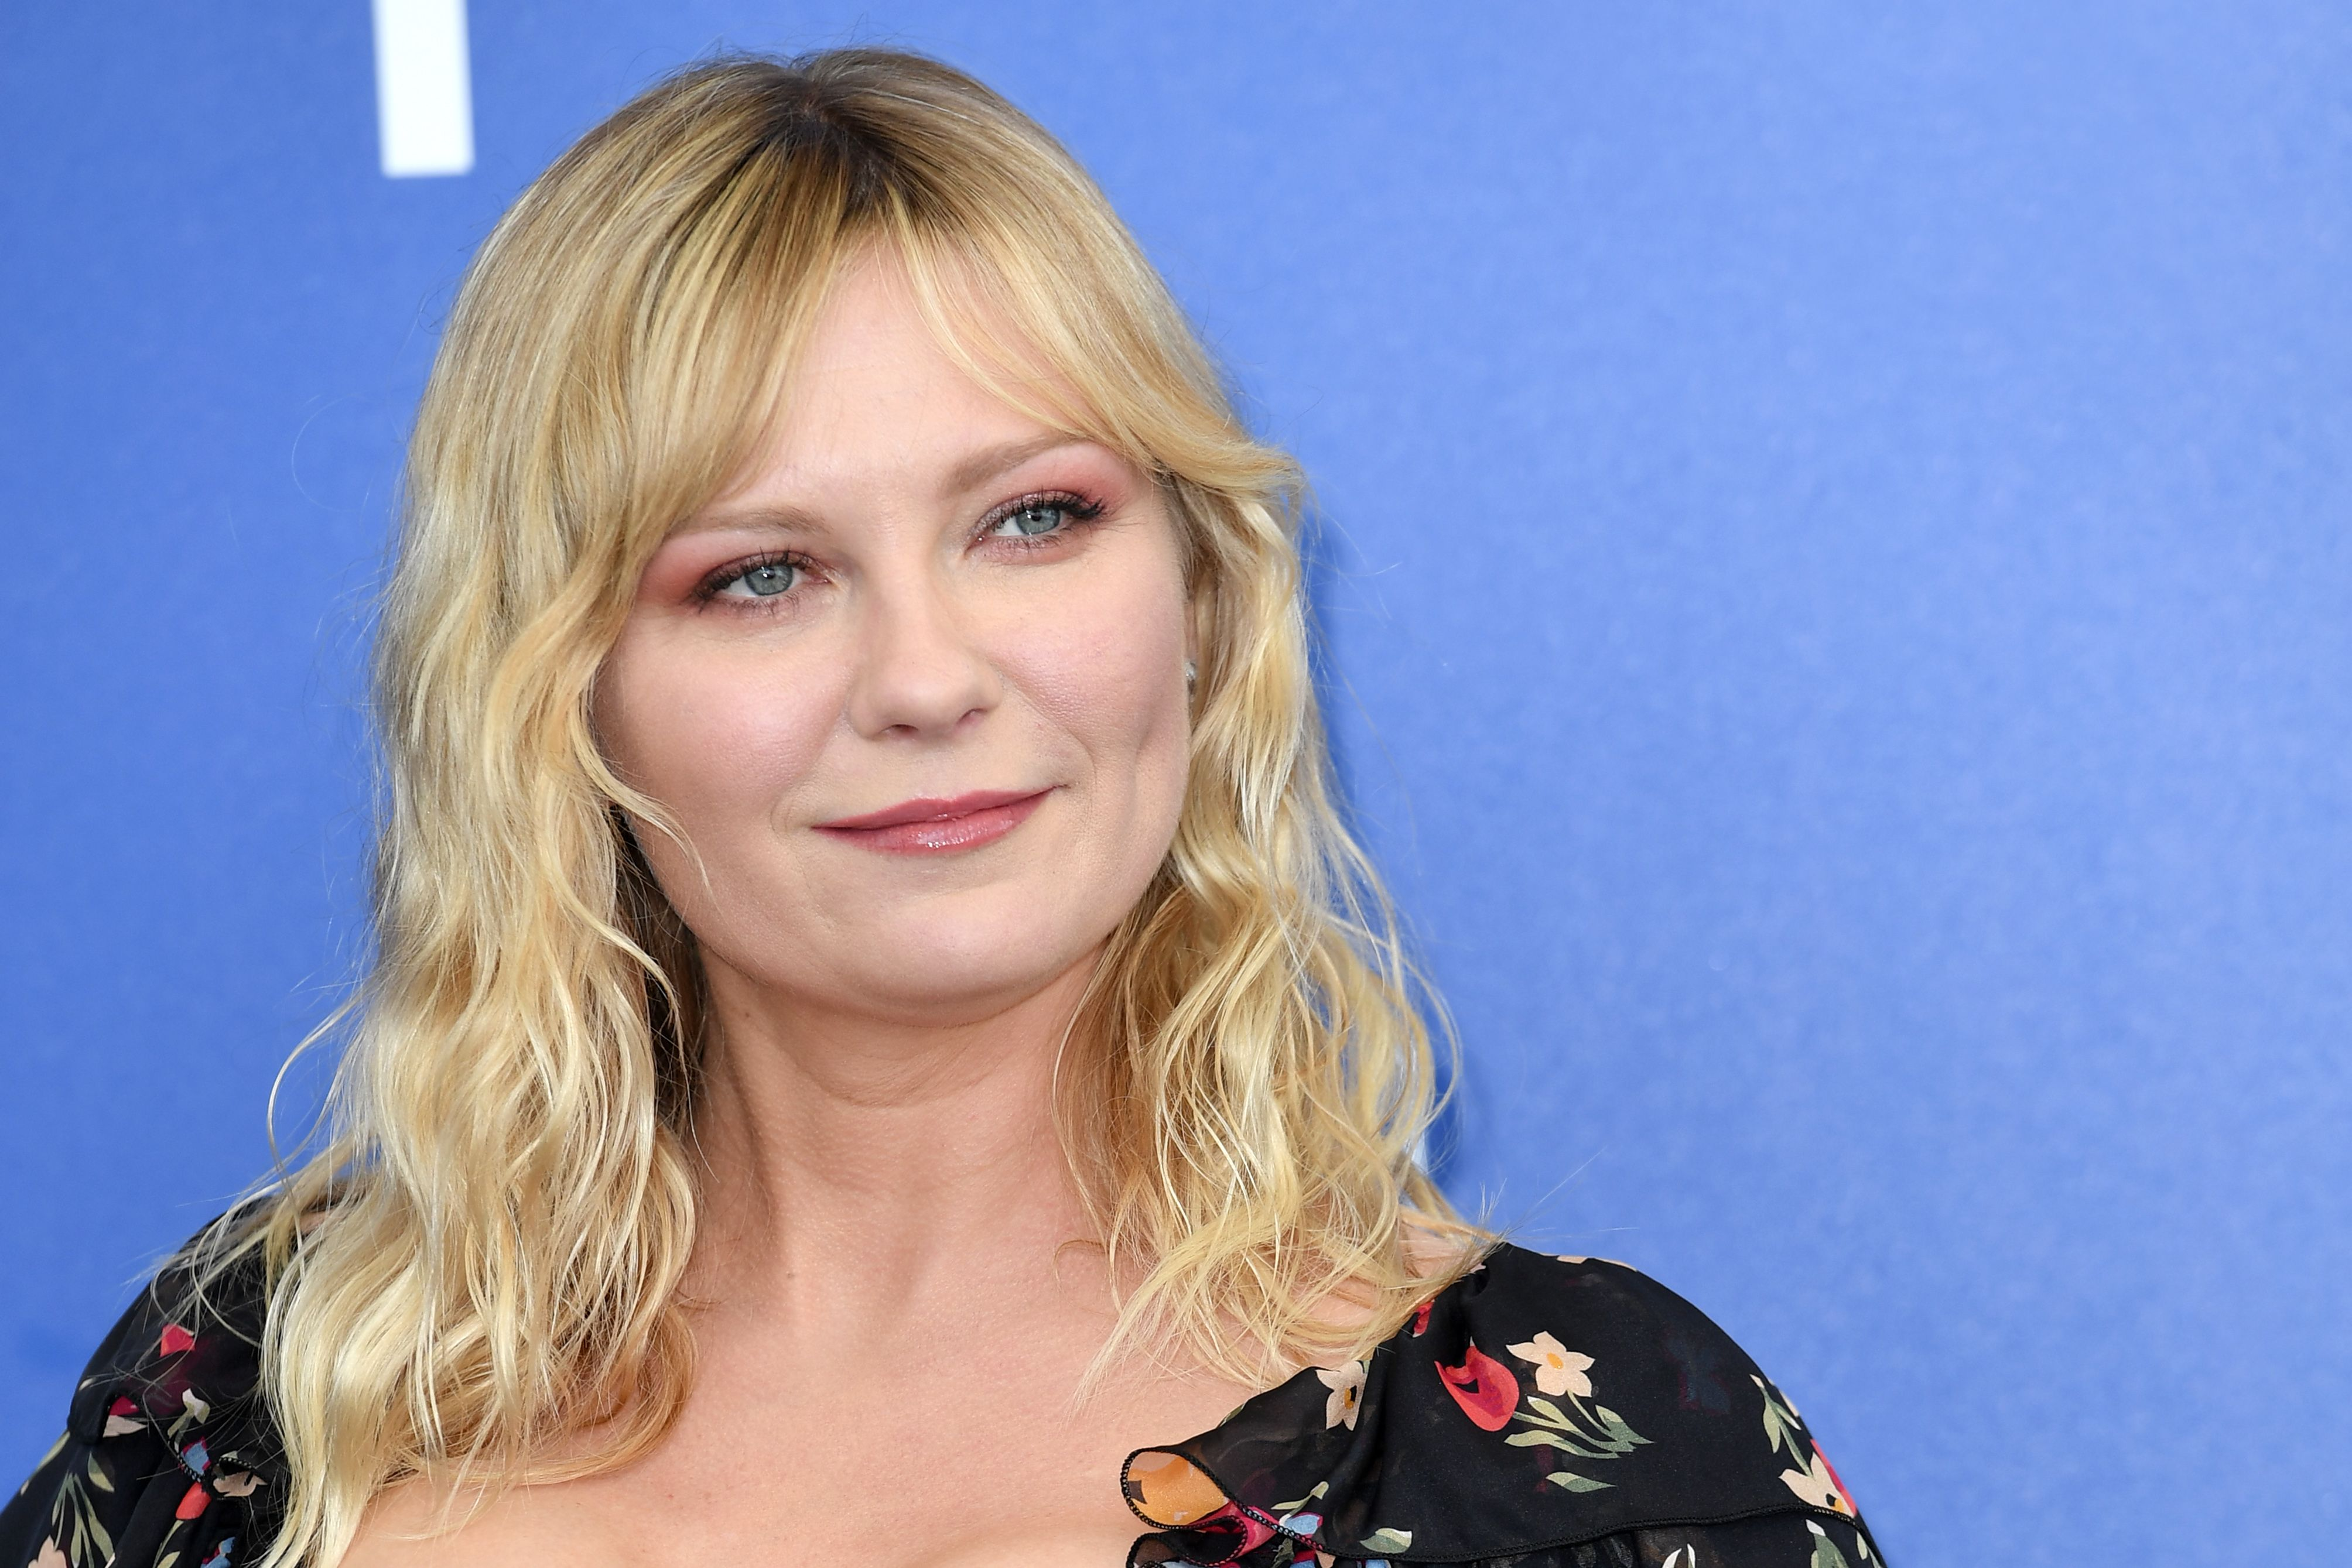 Kirsten Dunst Laments Lack of Awards Recognition: 'Maybe I Don't Play the Game Enough'